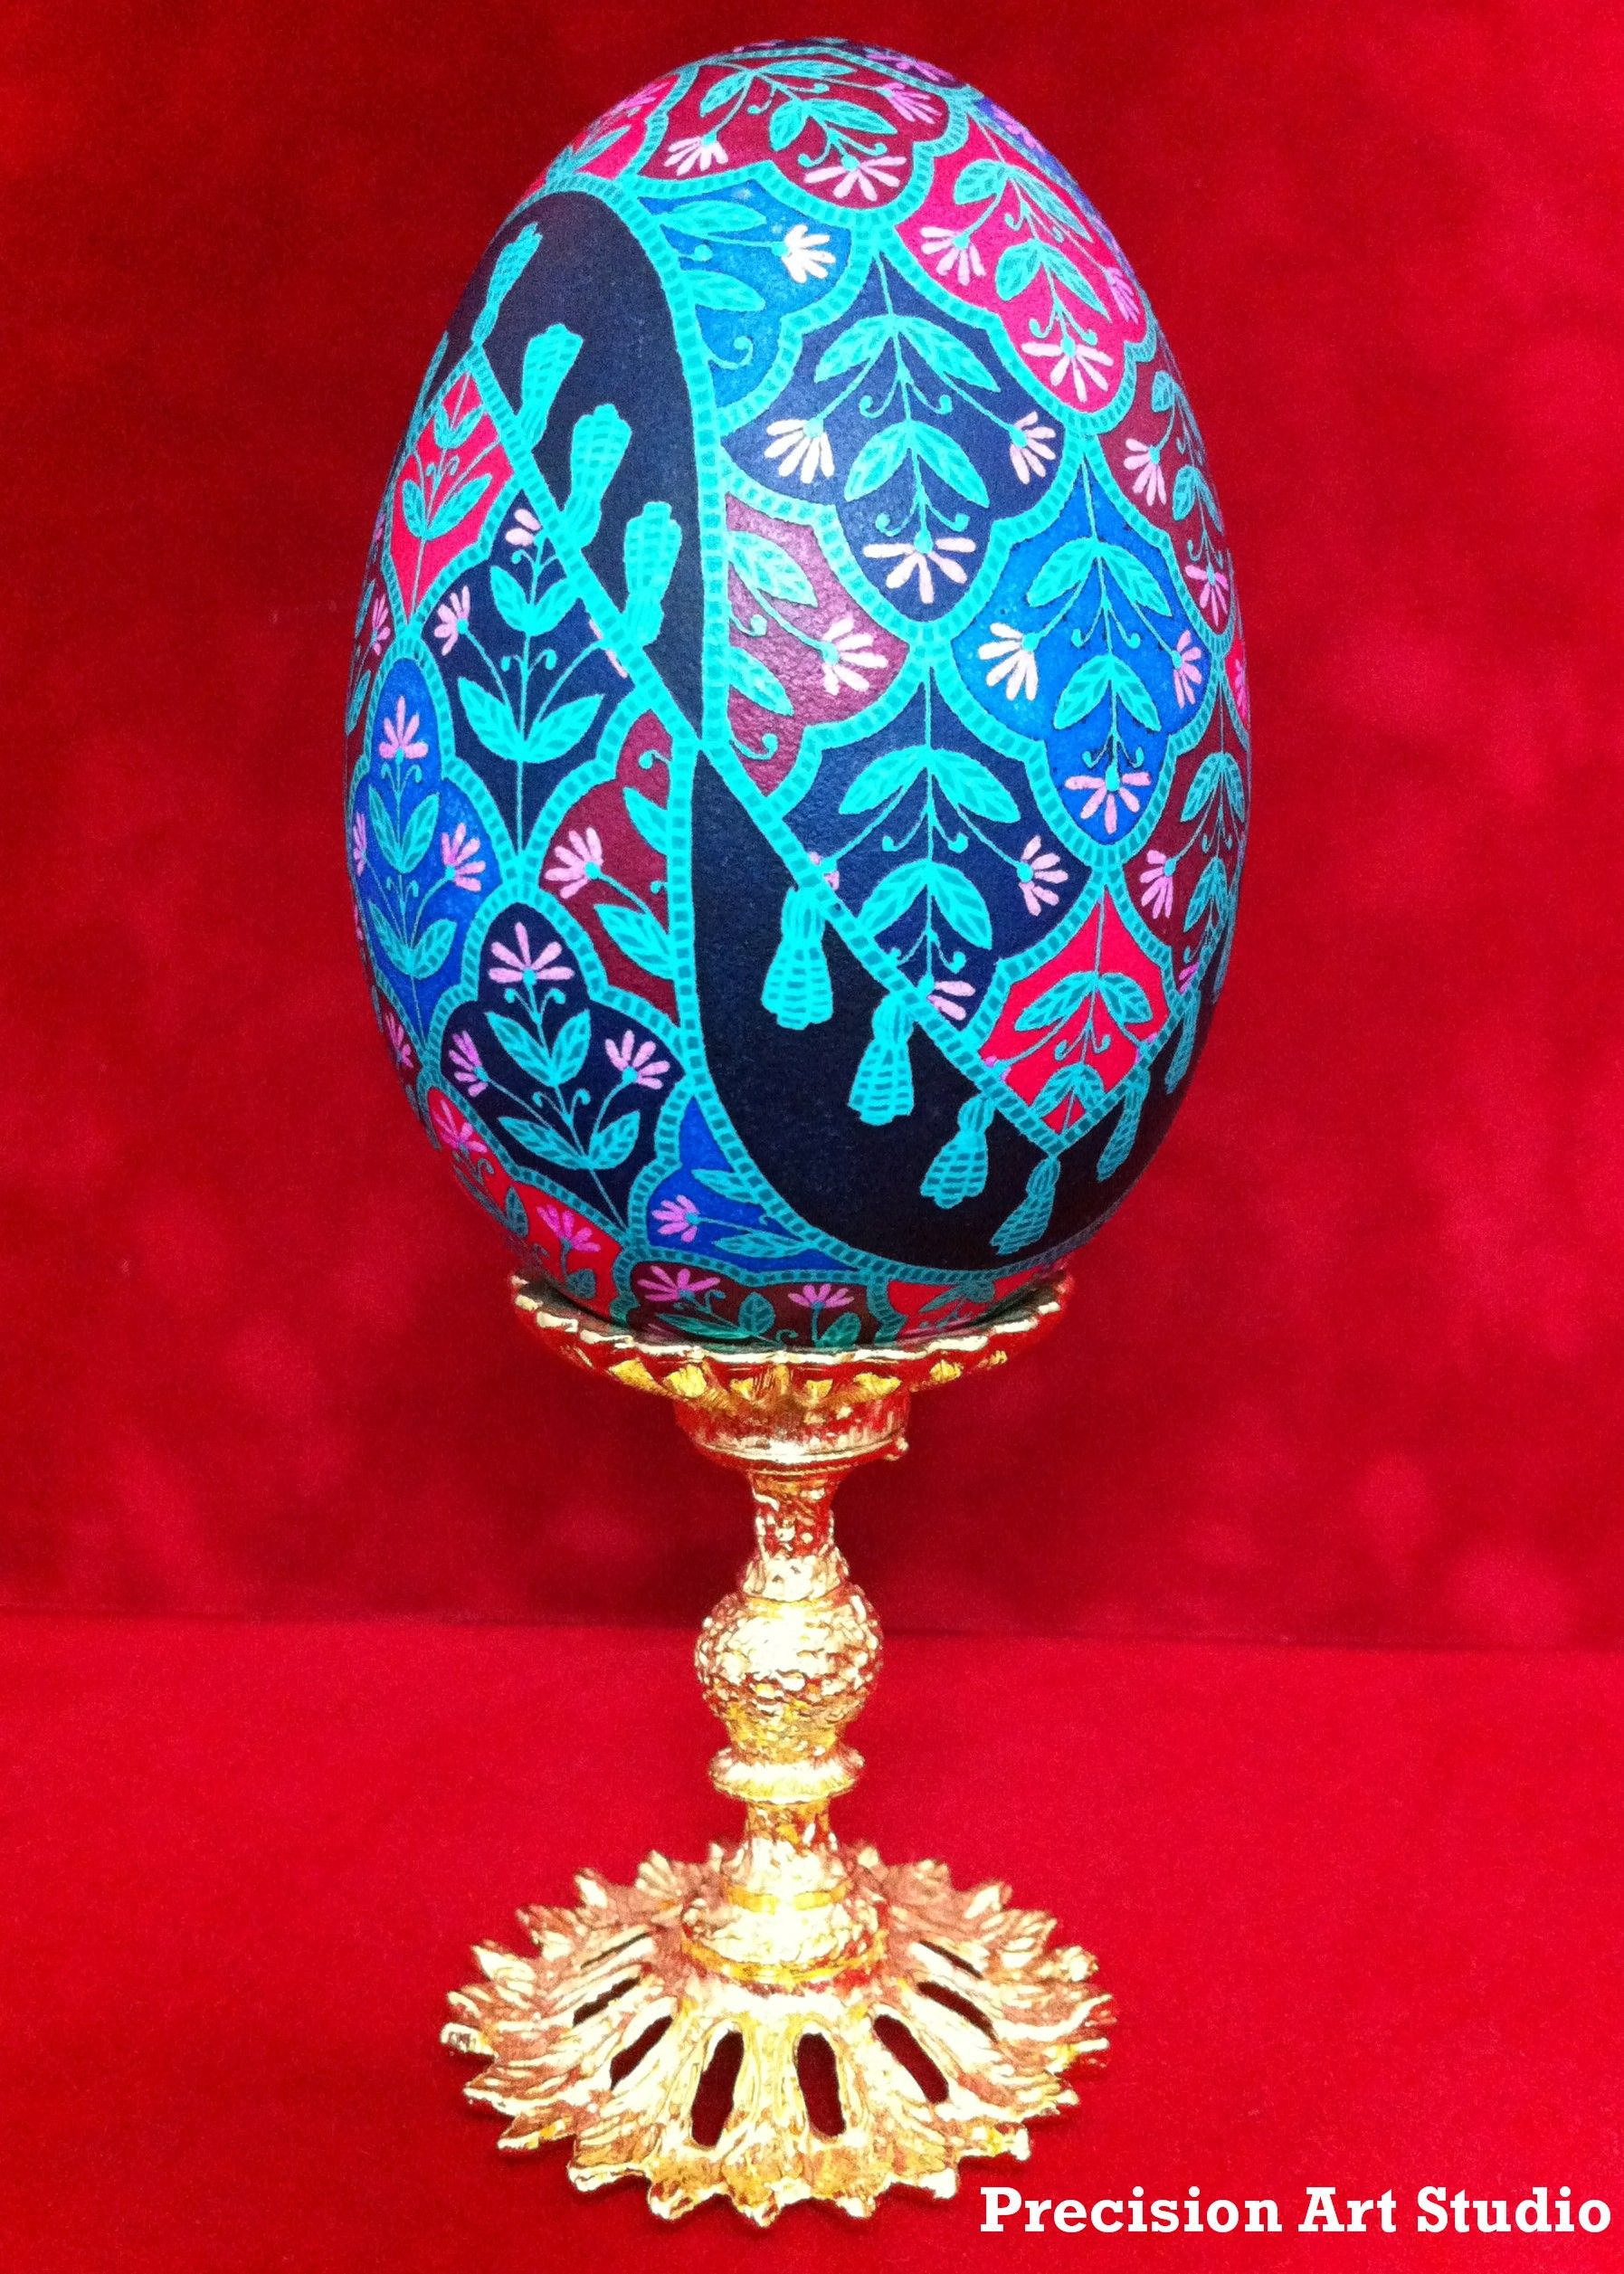 Pin By Theresa Somerset On 50 Years All Cooped Up Egg Series Egg Art Egg Decorating Arts And Crafts